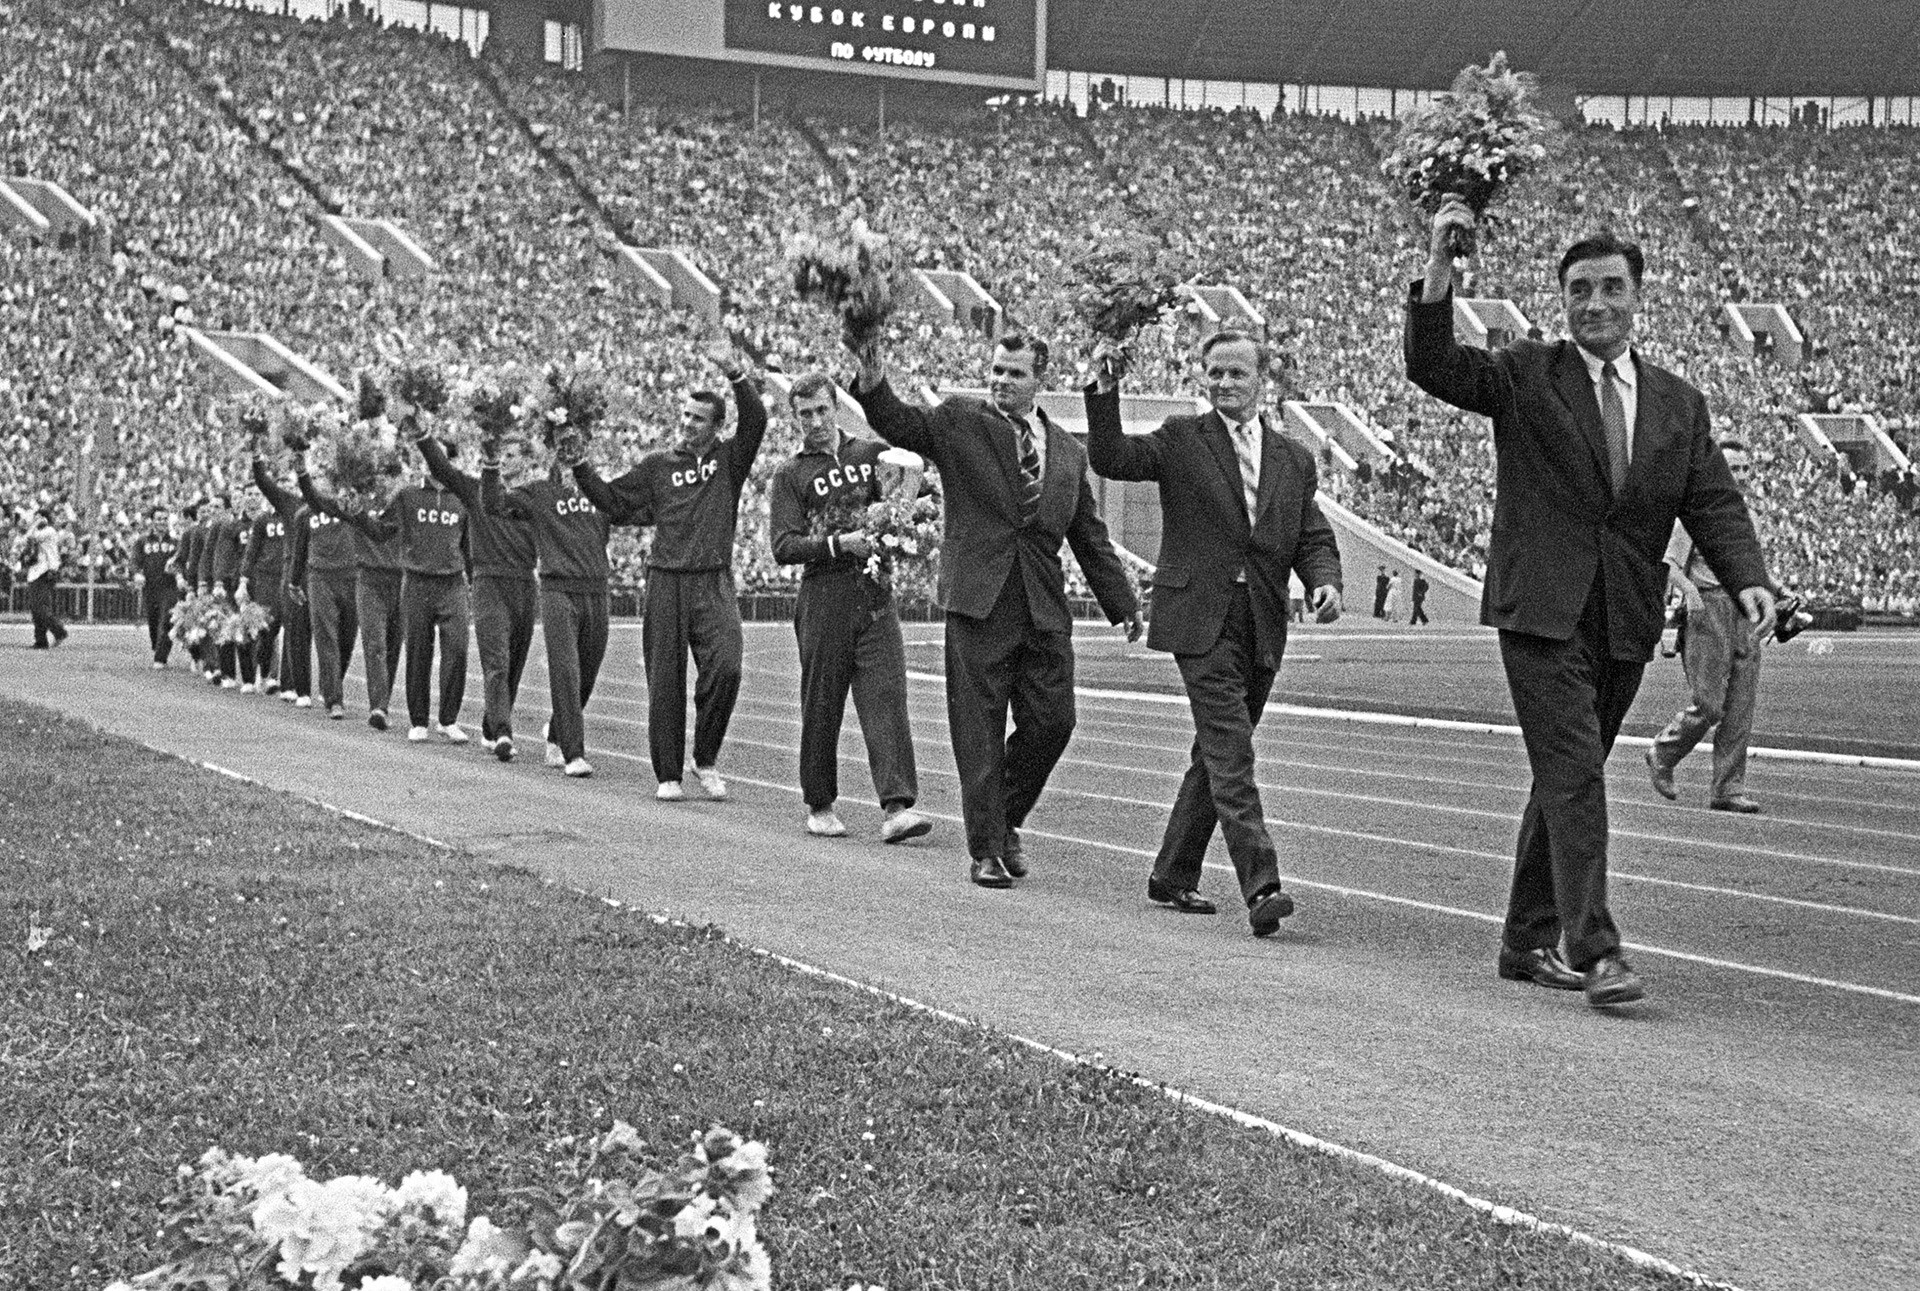 The Soviet national football team reigned supreme following the 1960 European Cup for the first time in its history.